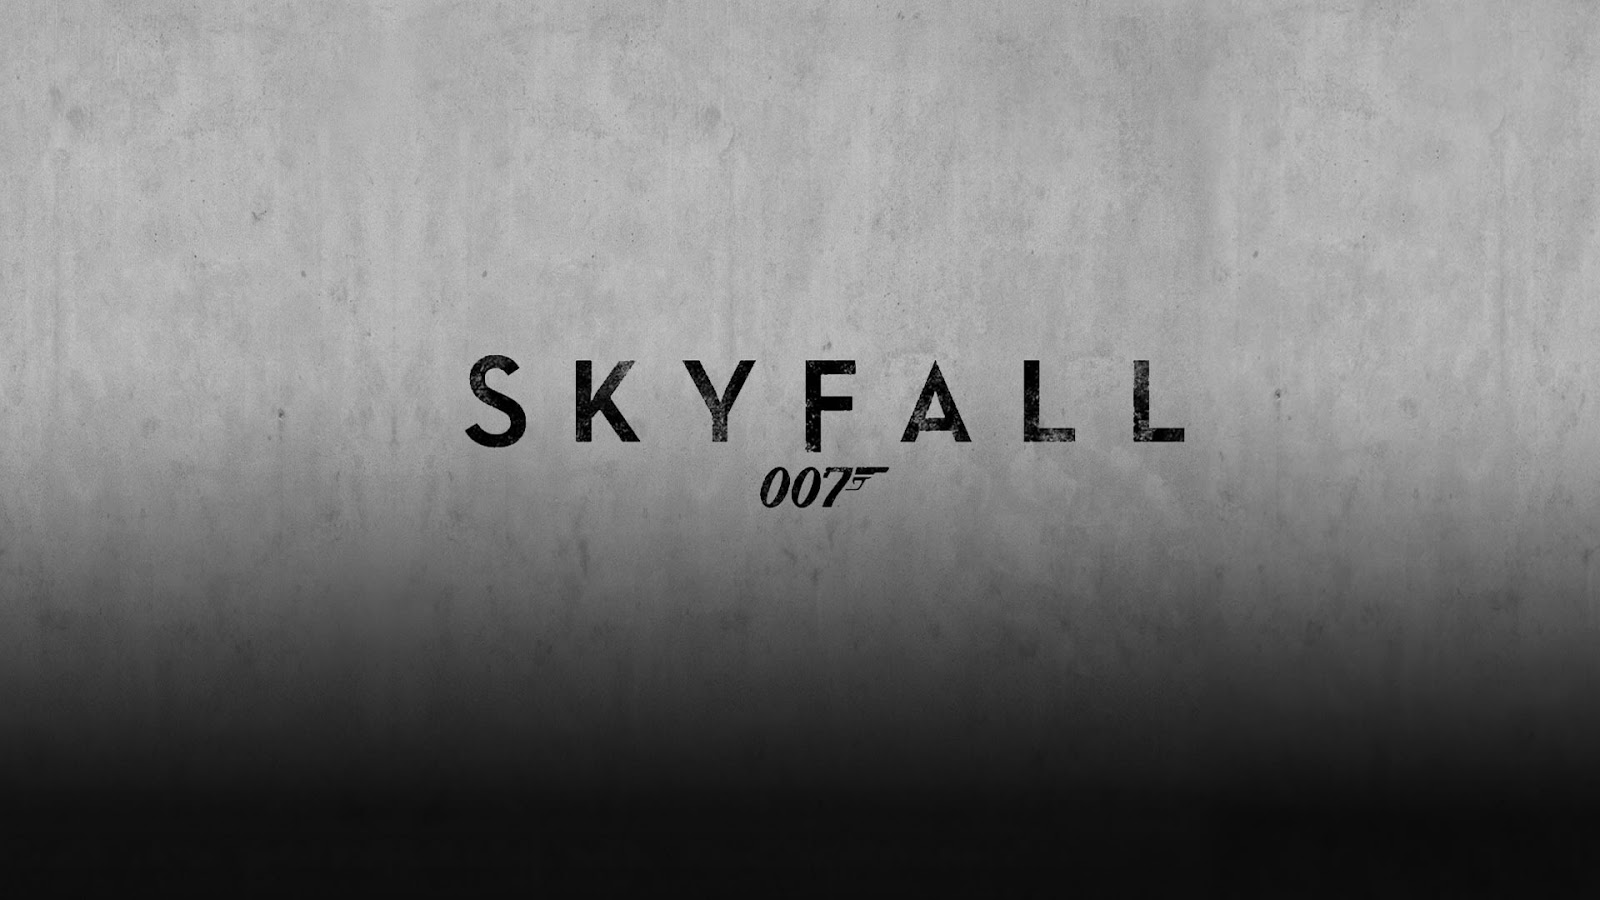 Download James Bond 007 Movie Skyfall HD Wallpapers for iPad 3 1600x900